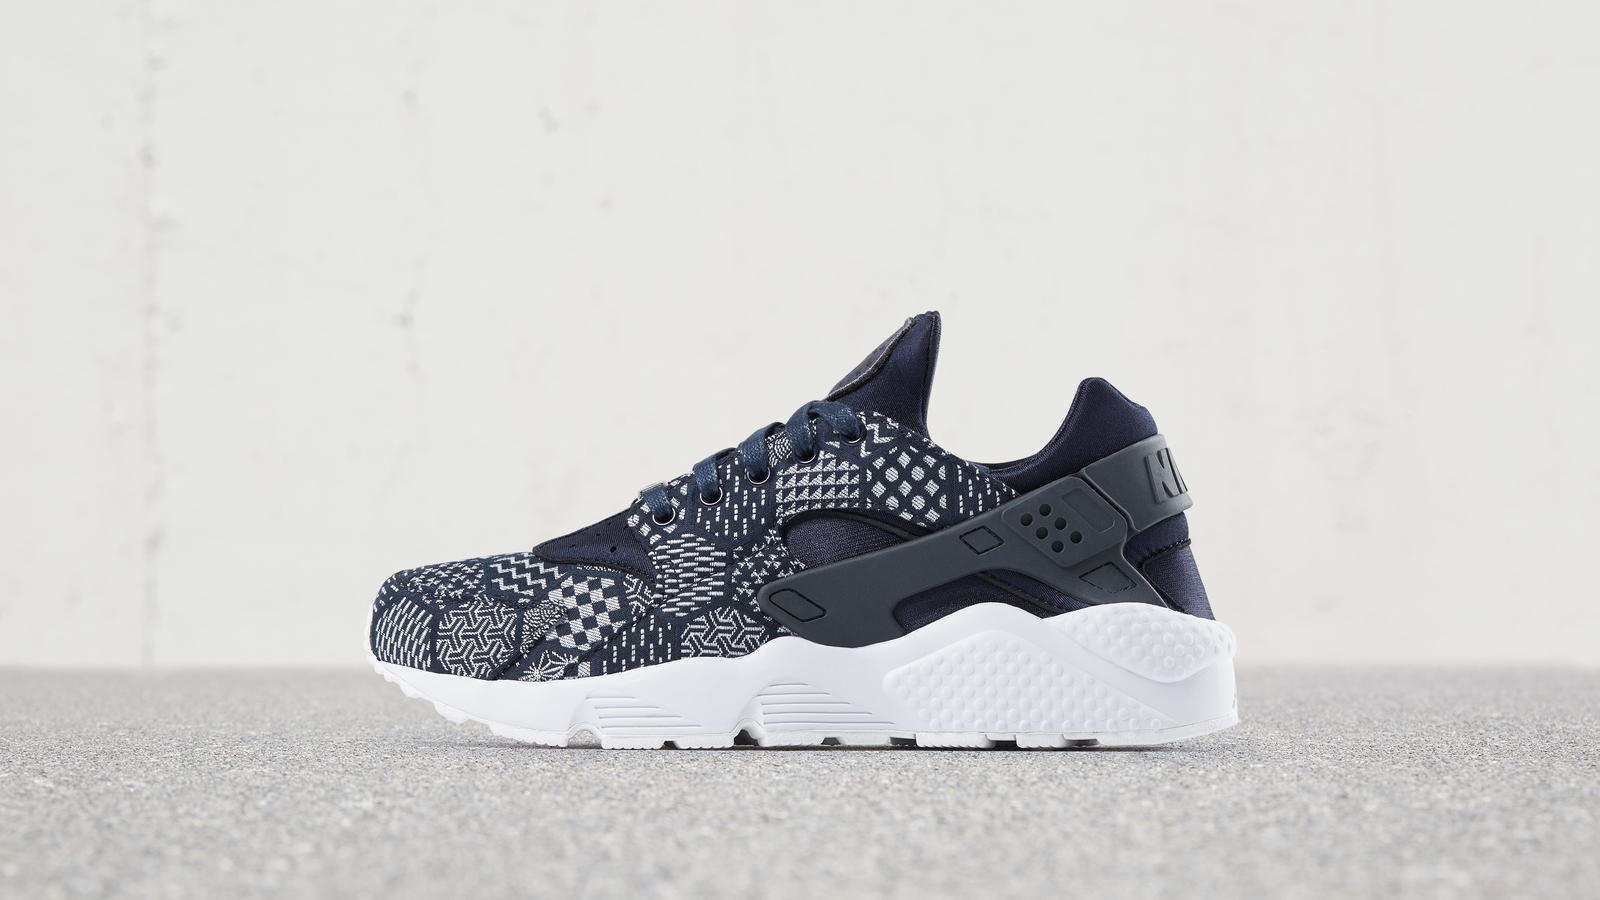 Nike Huarache Ultra Femmes Blanches Inverses magasin discount vente nicekicks magasin de dédouanement 2d7F8Ne5pP